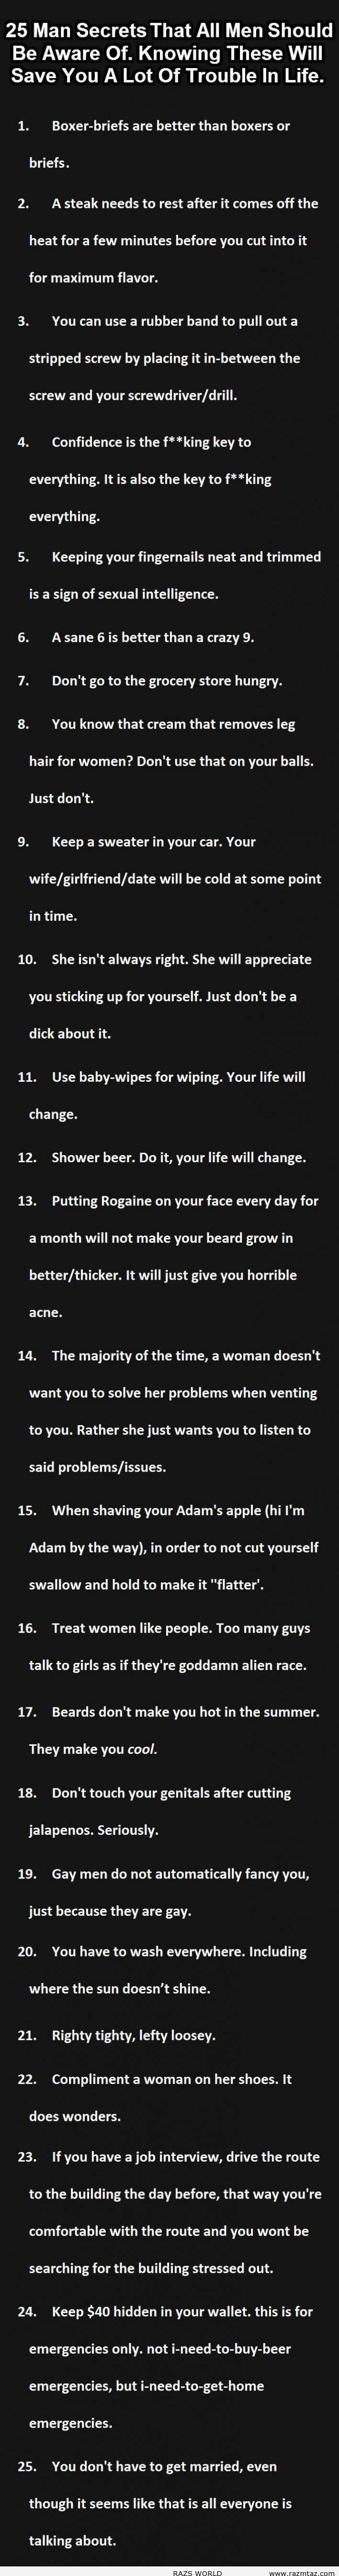 25 Man Secrets That All Men Should Be Aware Of - Mostly common sense, a few very obvious and several very handy | #lifehack #manhack #mansecrets